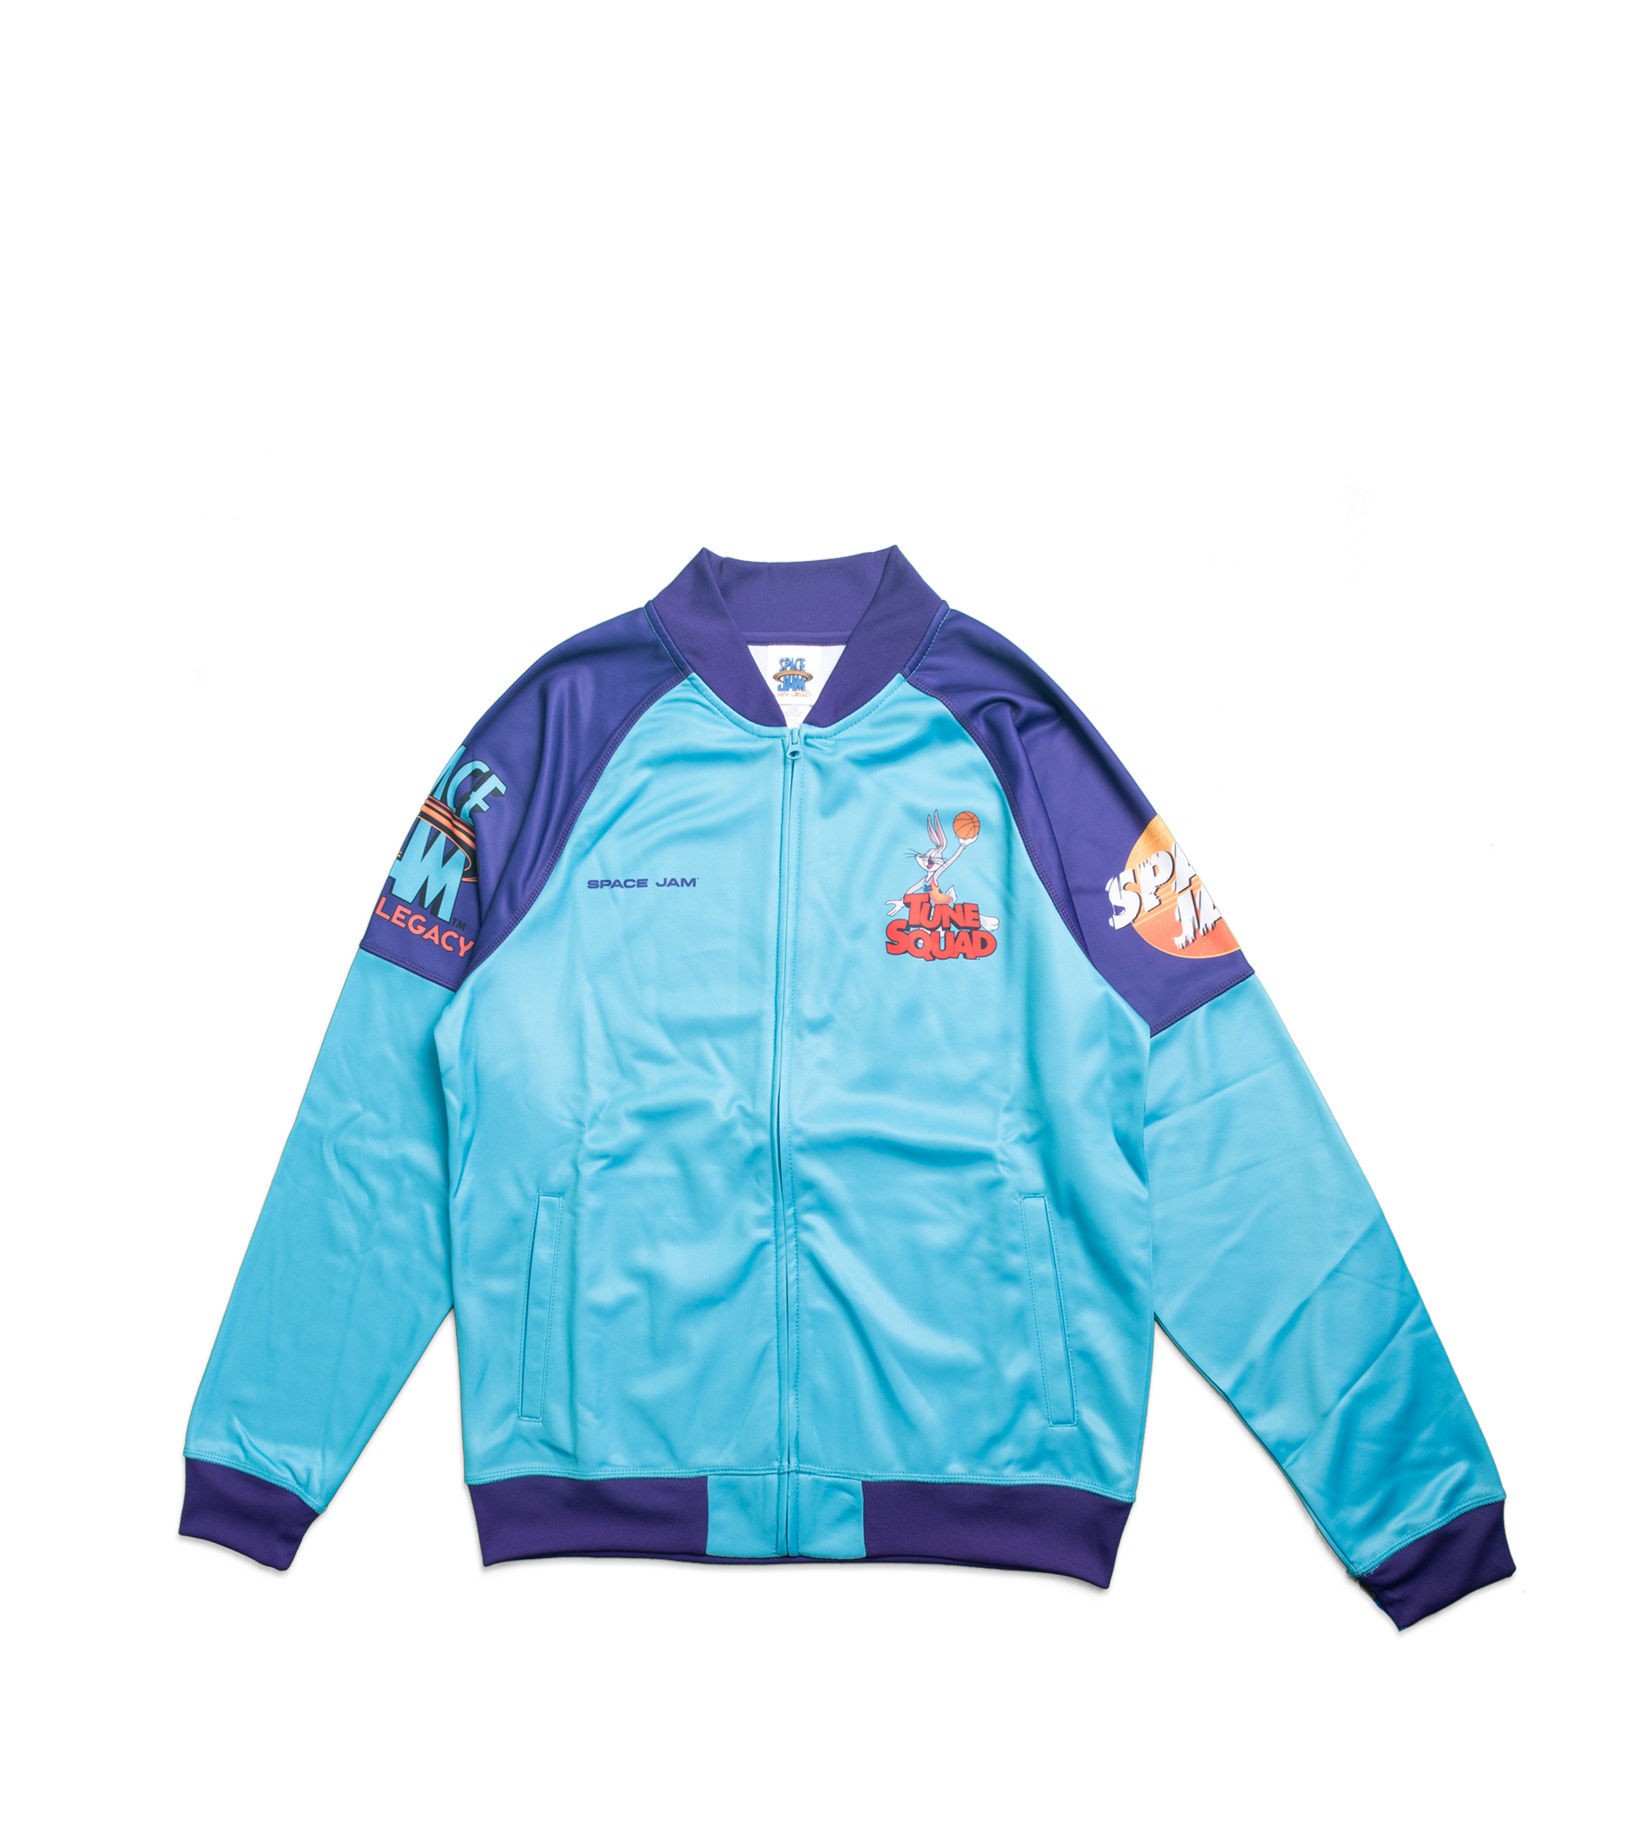 """Game Changer Space Jam 2 Full-Zip Jacket (Youth) """"Teal/Purple""""-1"""